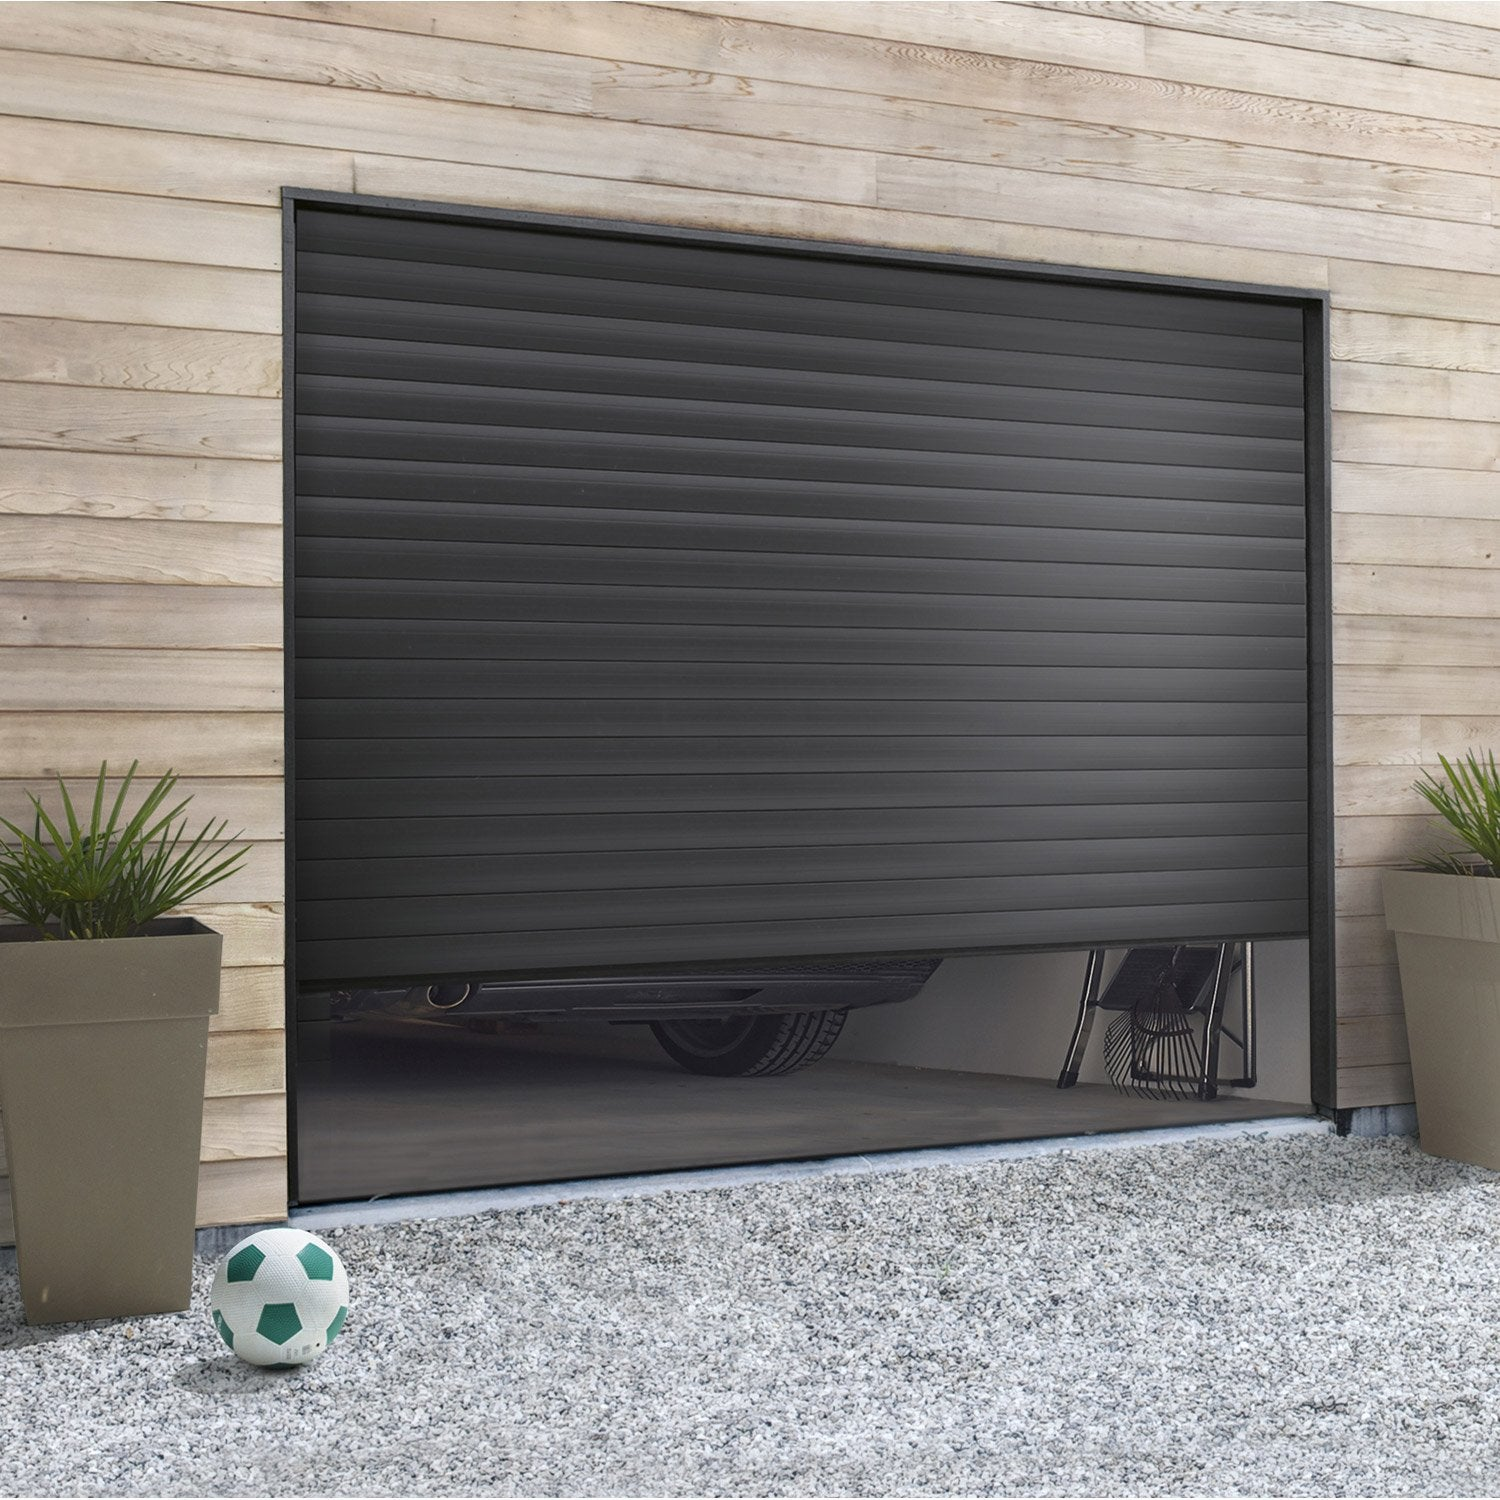 Pose d 39 une porte de garage enroulement leroy merlin for Installer chatiere porte garage